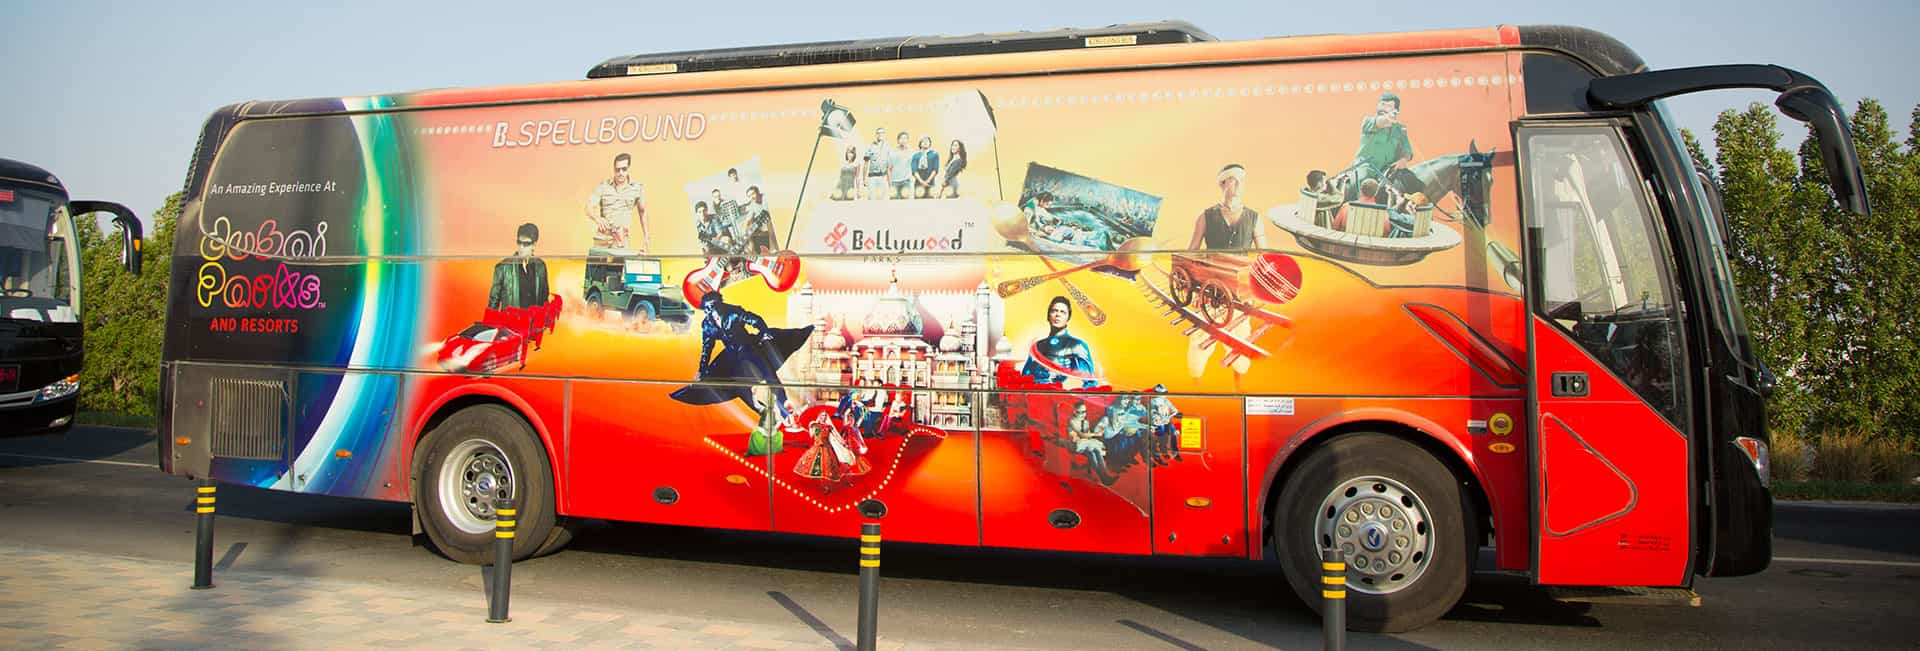 Vehicle branding image of Bus